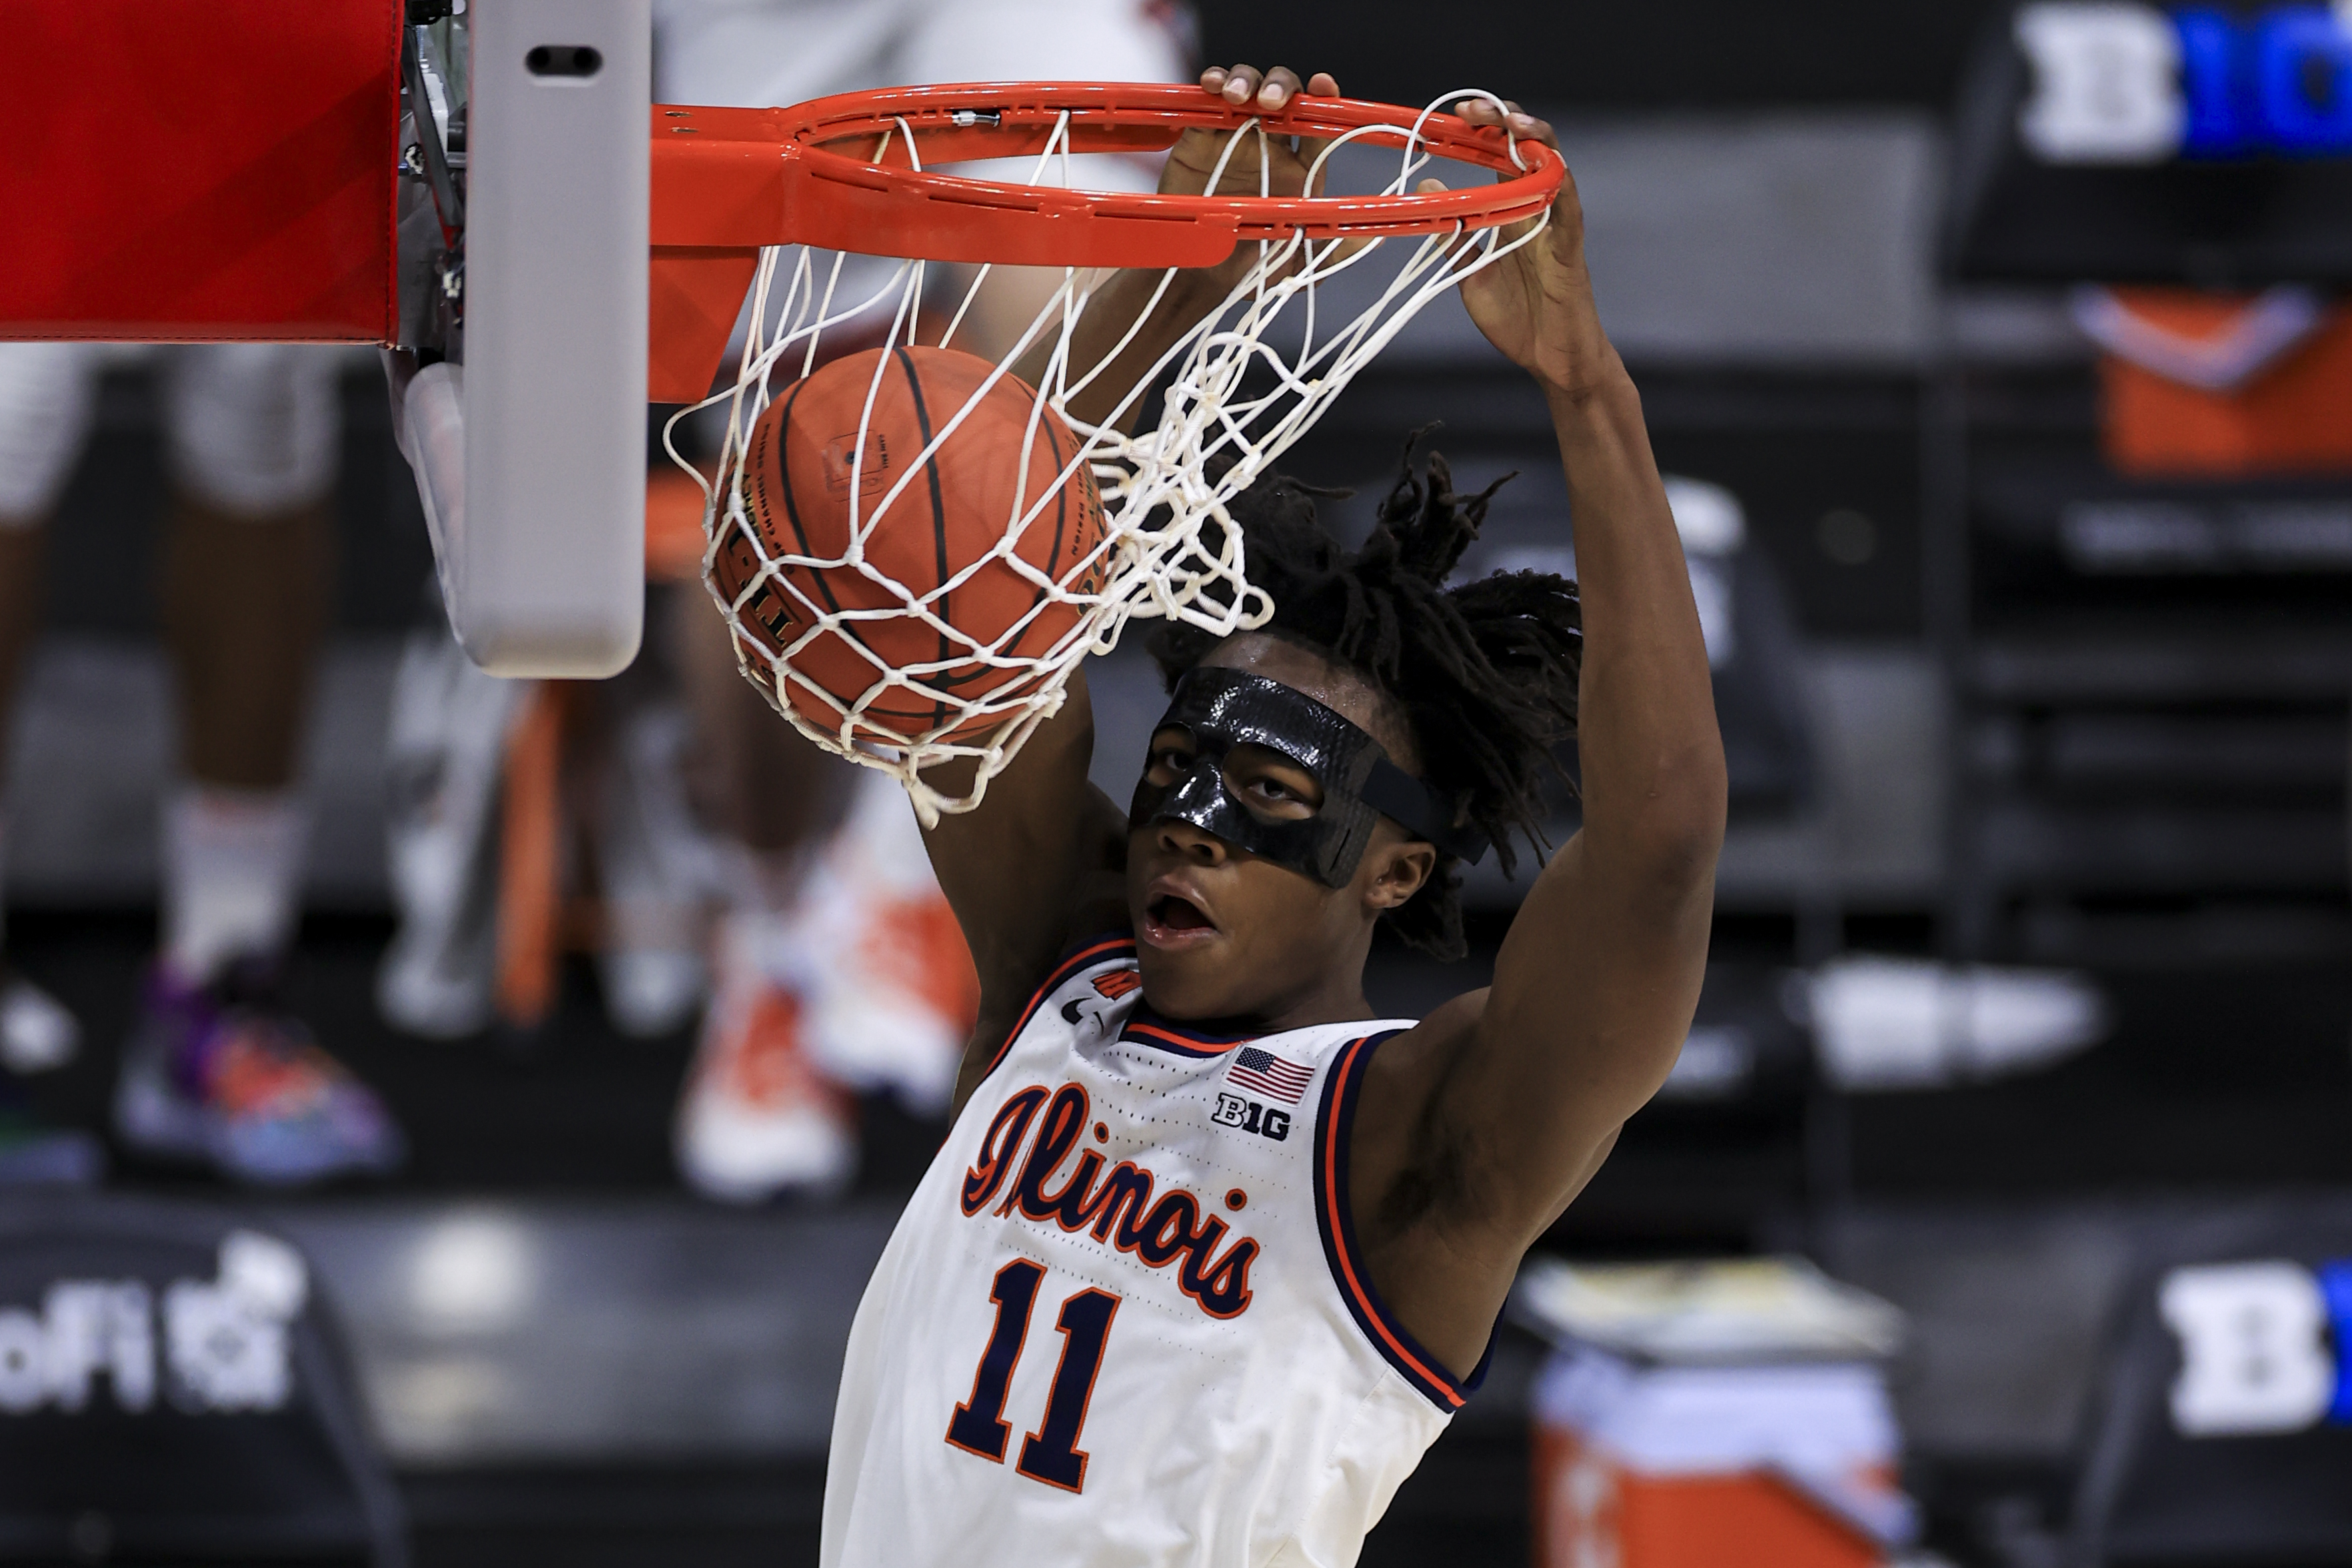 Illinois Fighting Illini guard Ayo Dosunmu (11) dunks the ball against the Iowa Hawkeyes in the second half at Lucas Oil Stadium.